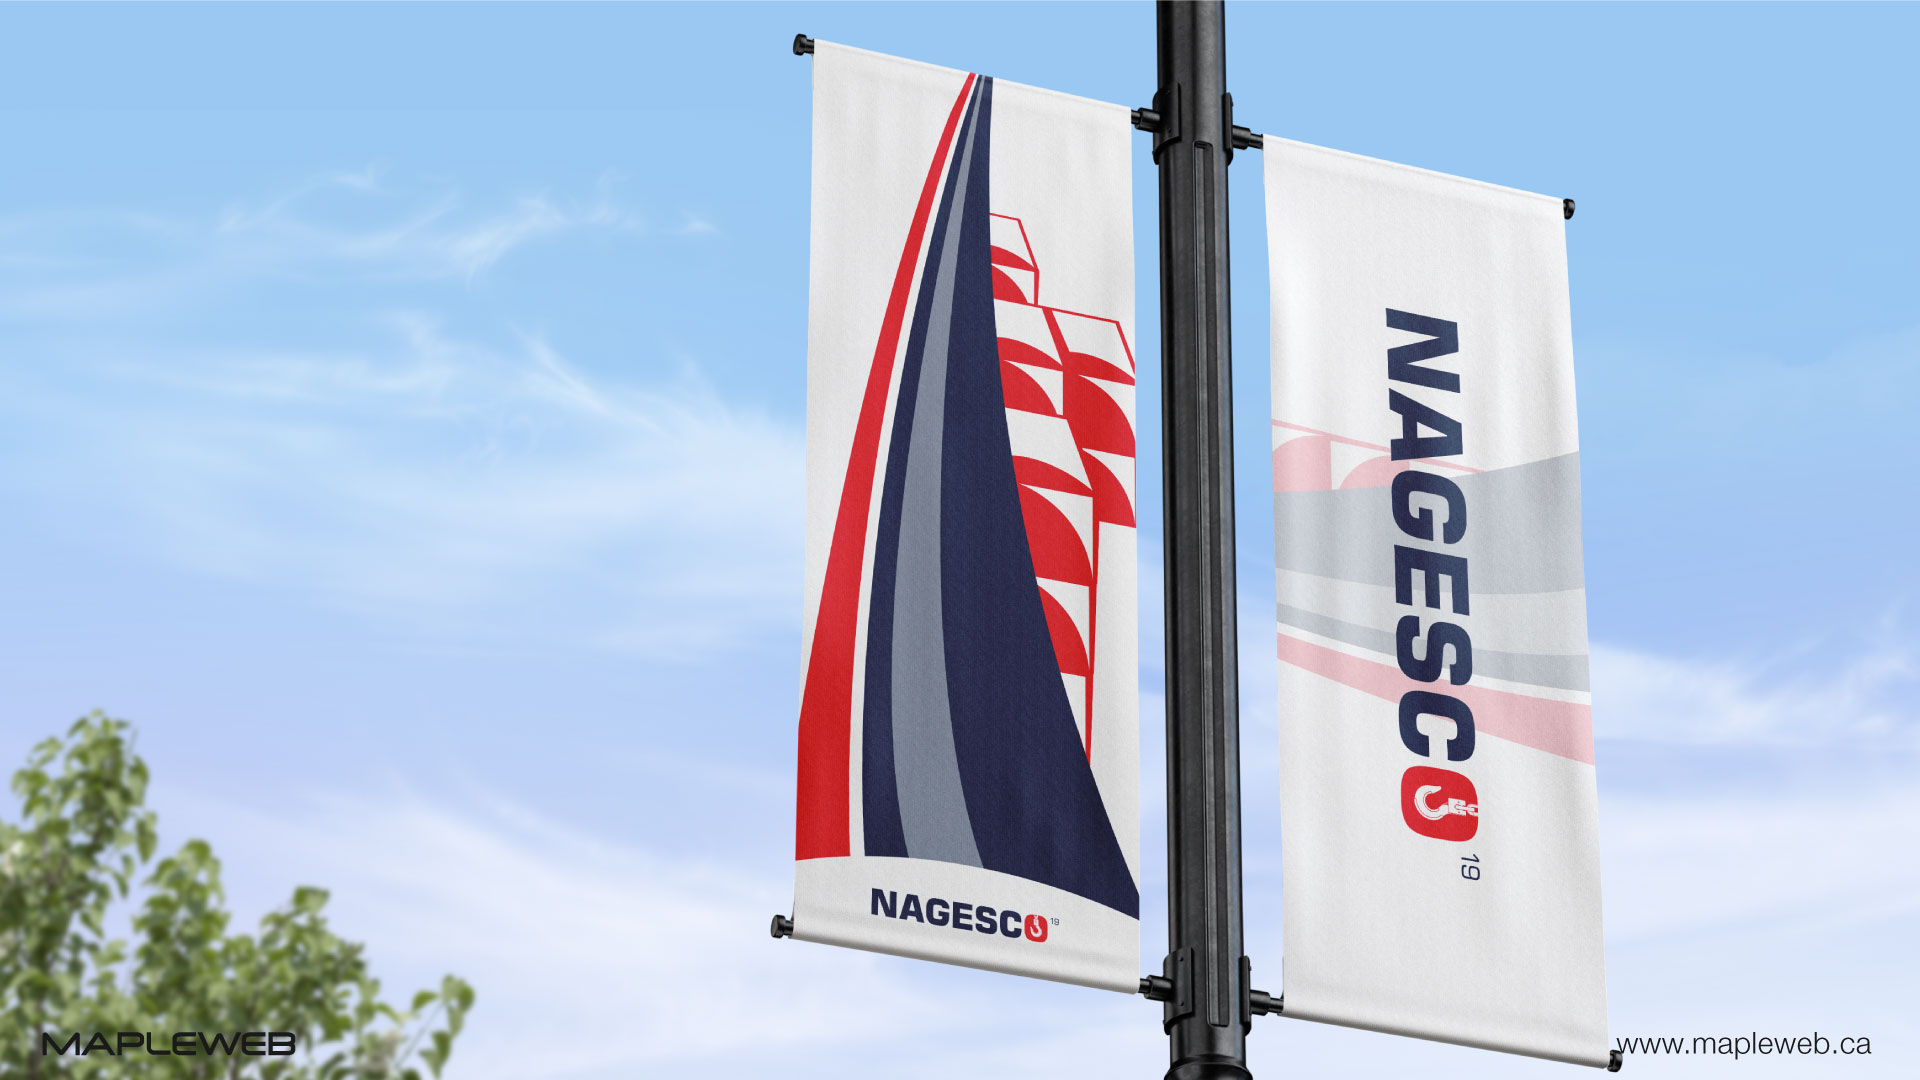 nagesco-brand-logo-design-by-mapleweb-vancouver-canada-paper-mock